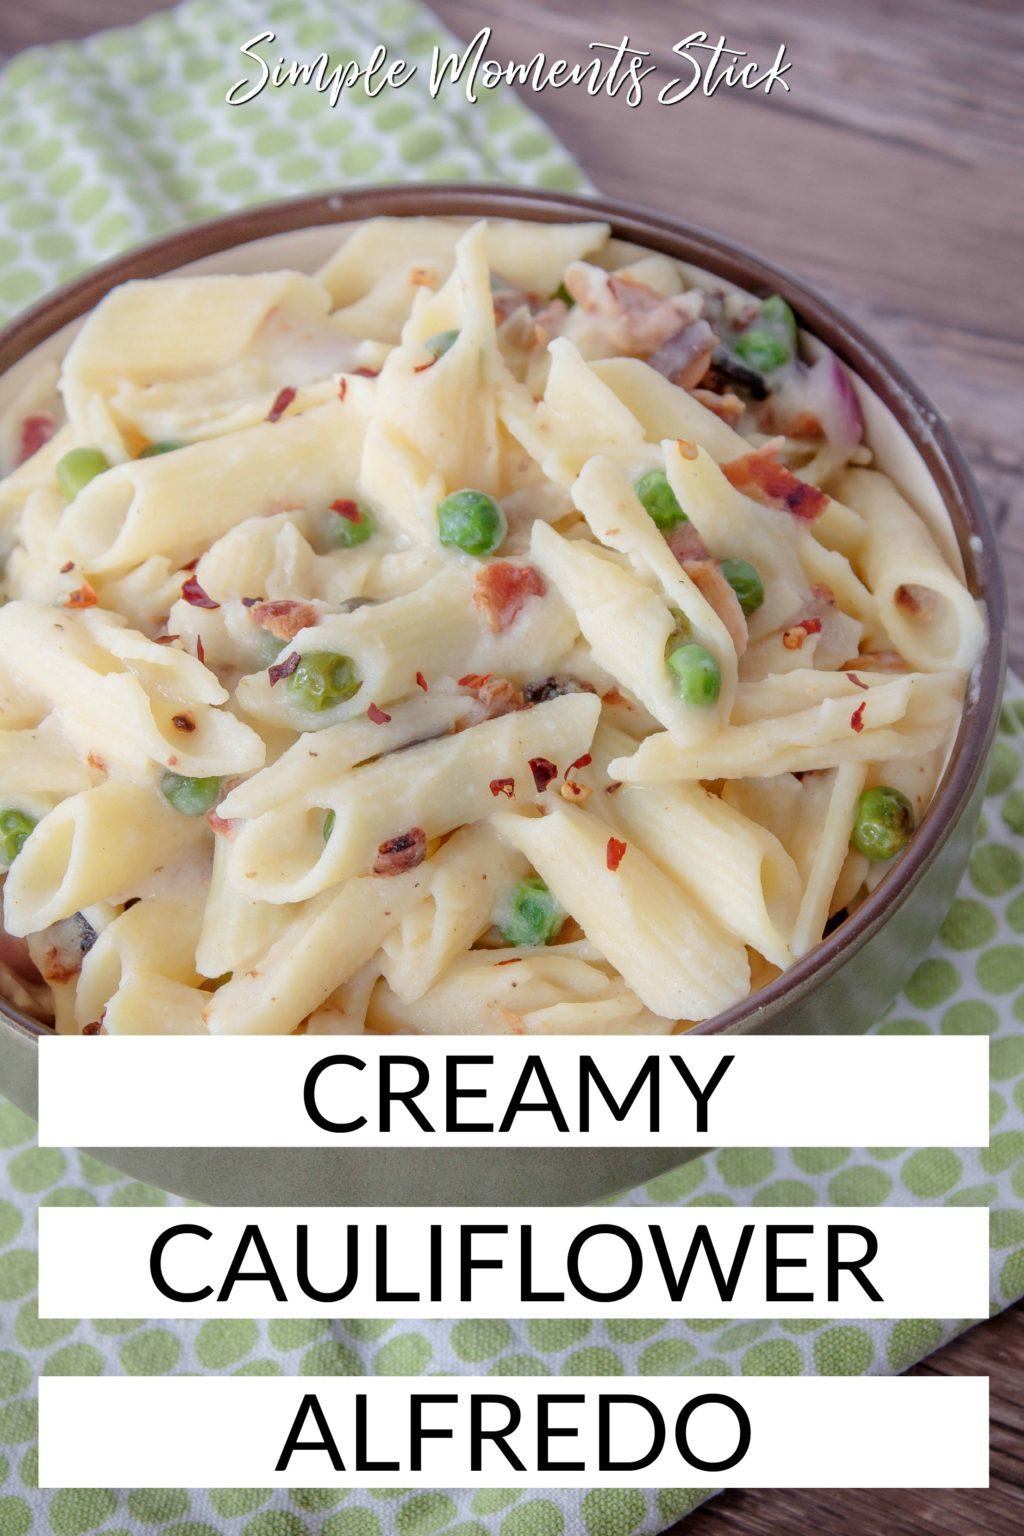 How to make cauliflower alfredo! You don't want to miss this recipe! #recipe #dairyfree #pasta #alfredo #dairyfreealfredo #cauliflower #cauliflowerrecipe